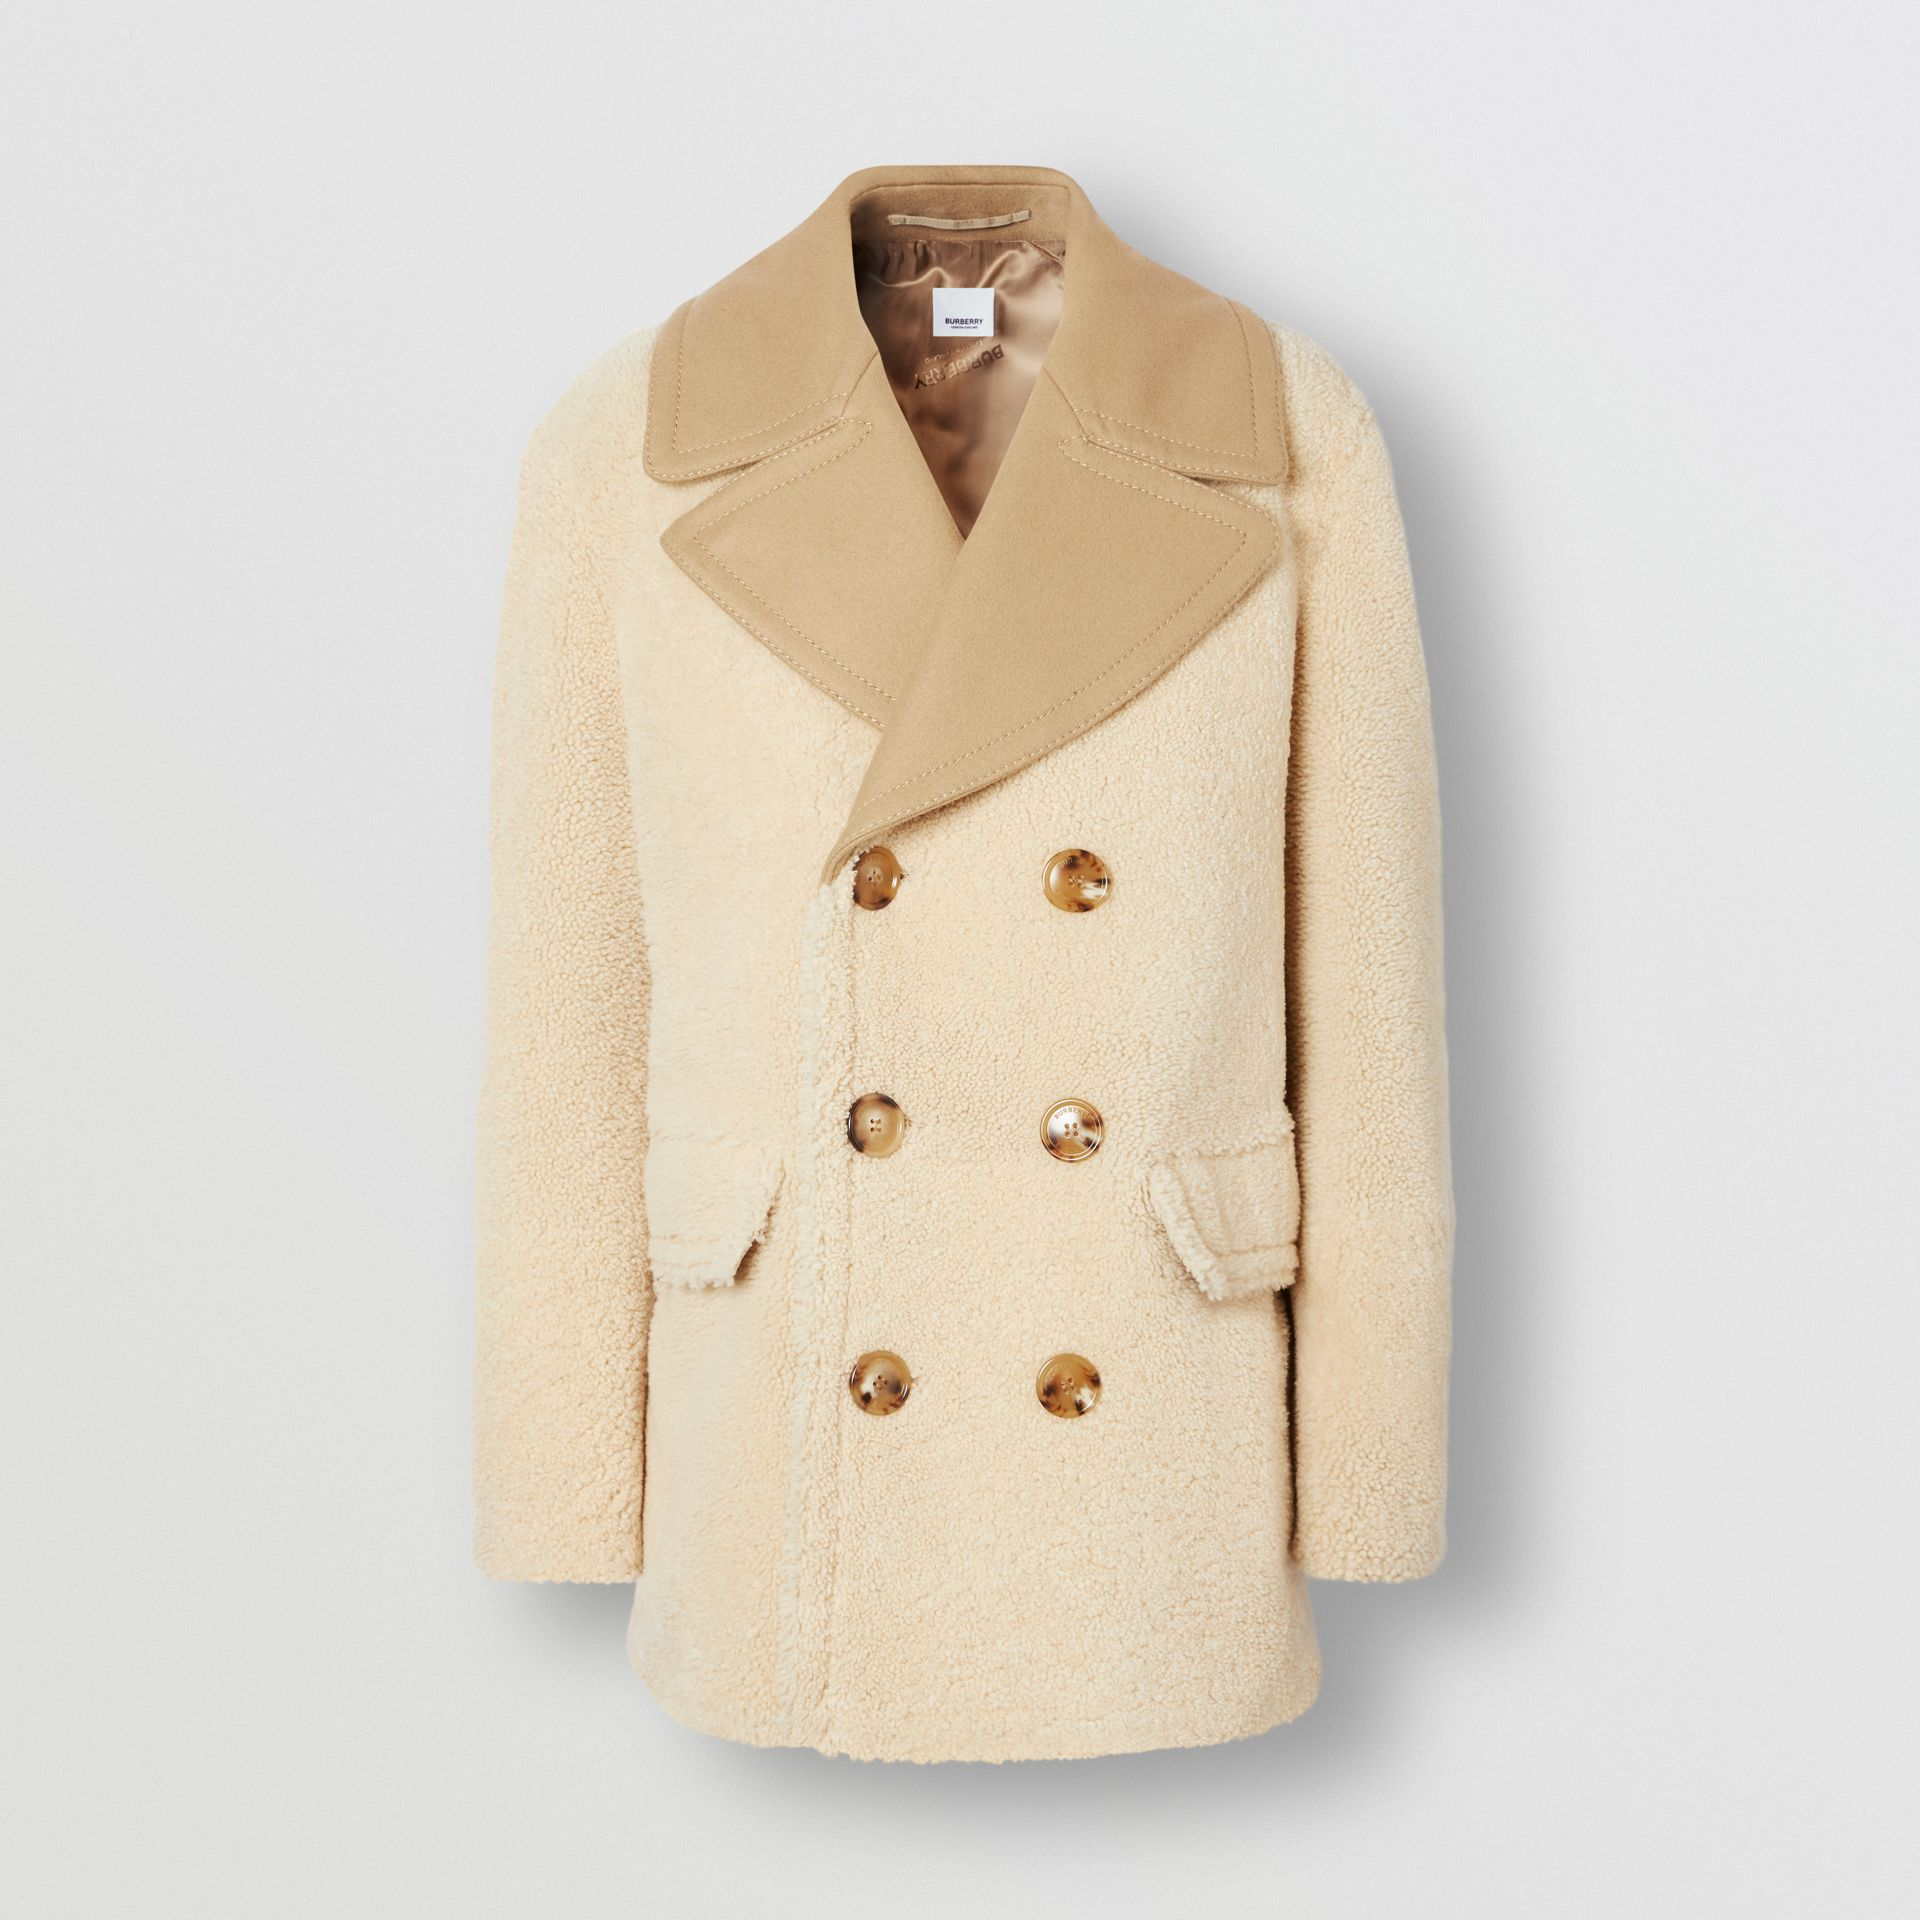 Contrast Wool Collar Shearling Pea Coat in Sesame - Men | Burberry - gallery image 3